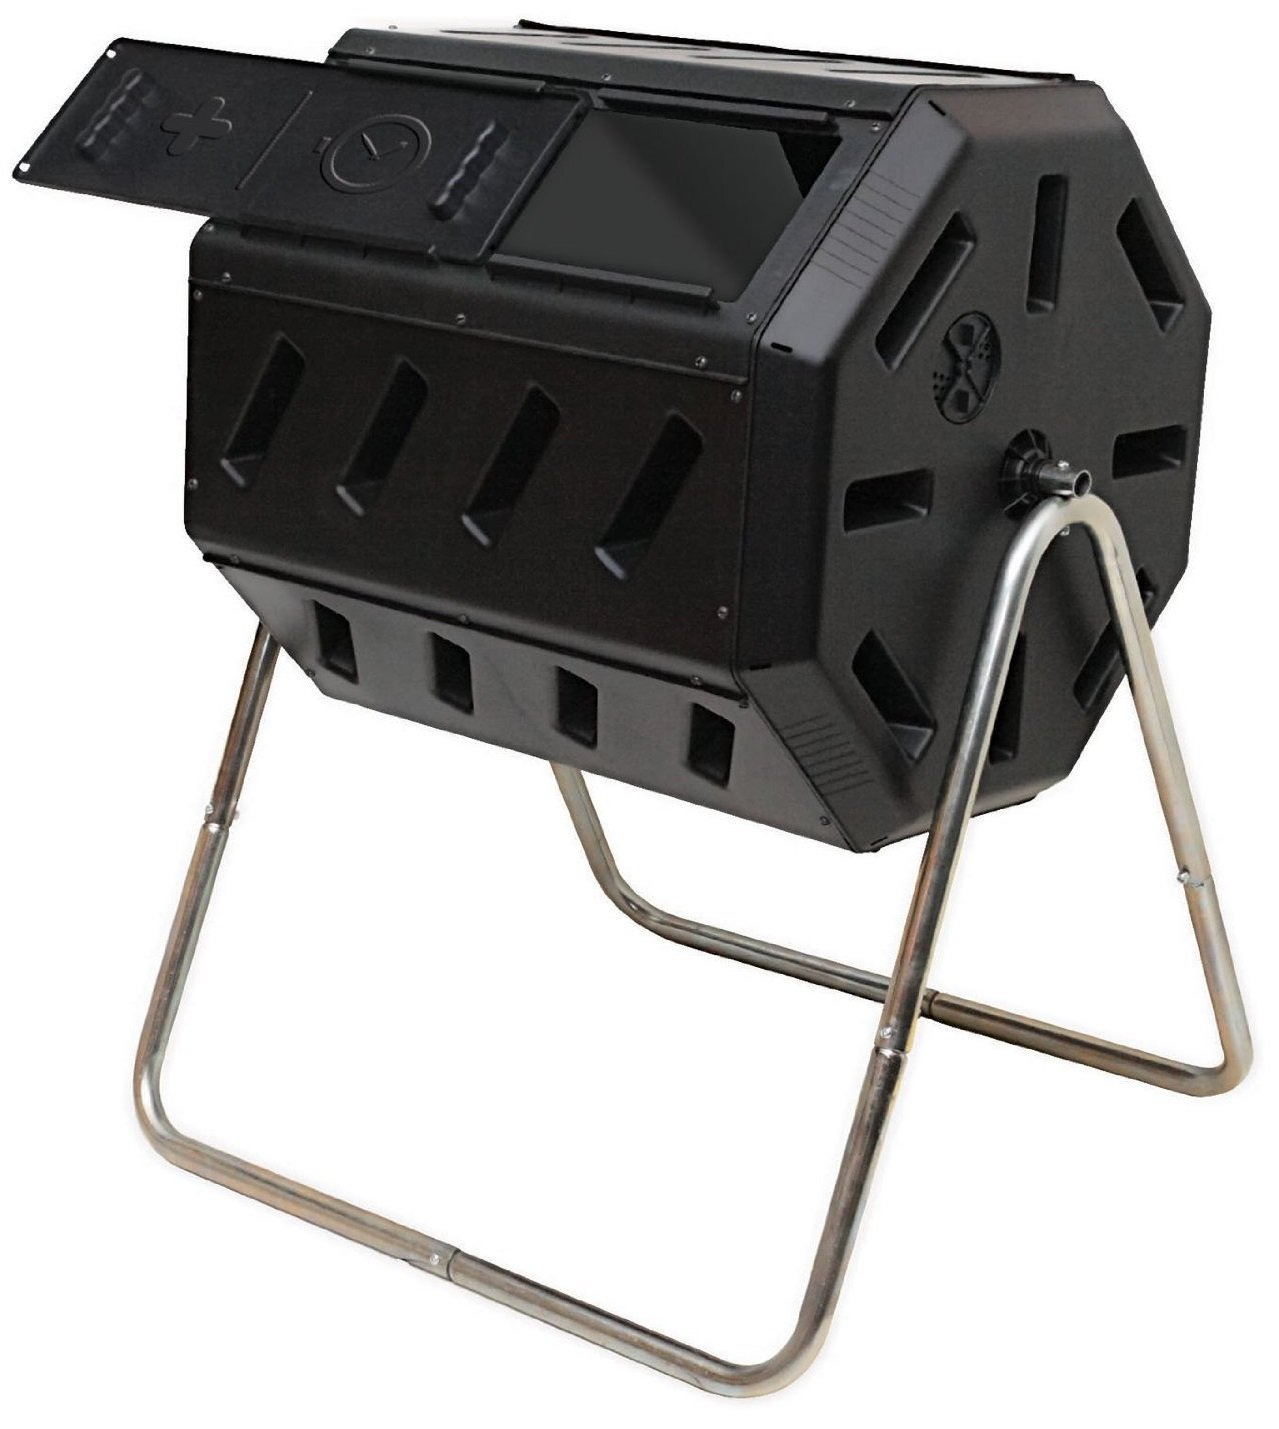 FCMP Outdoor IM4000 Tumbling Composter, 37 gallon Black